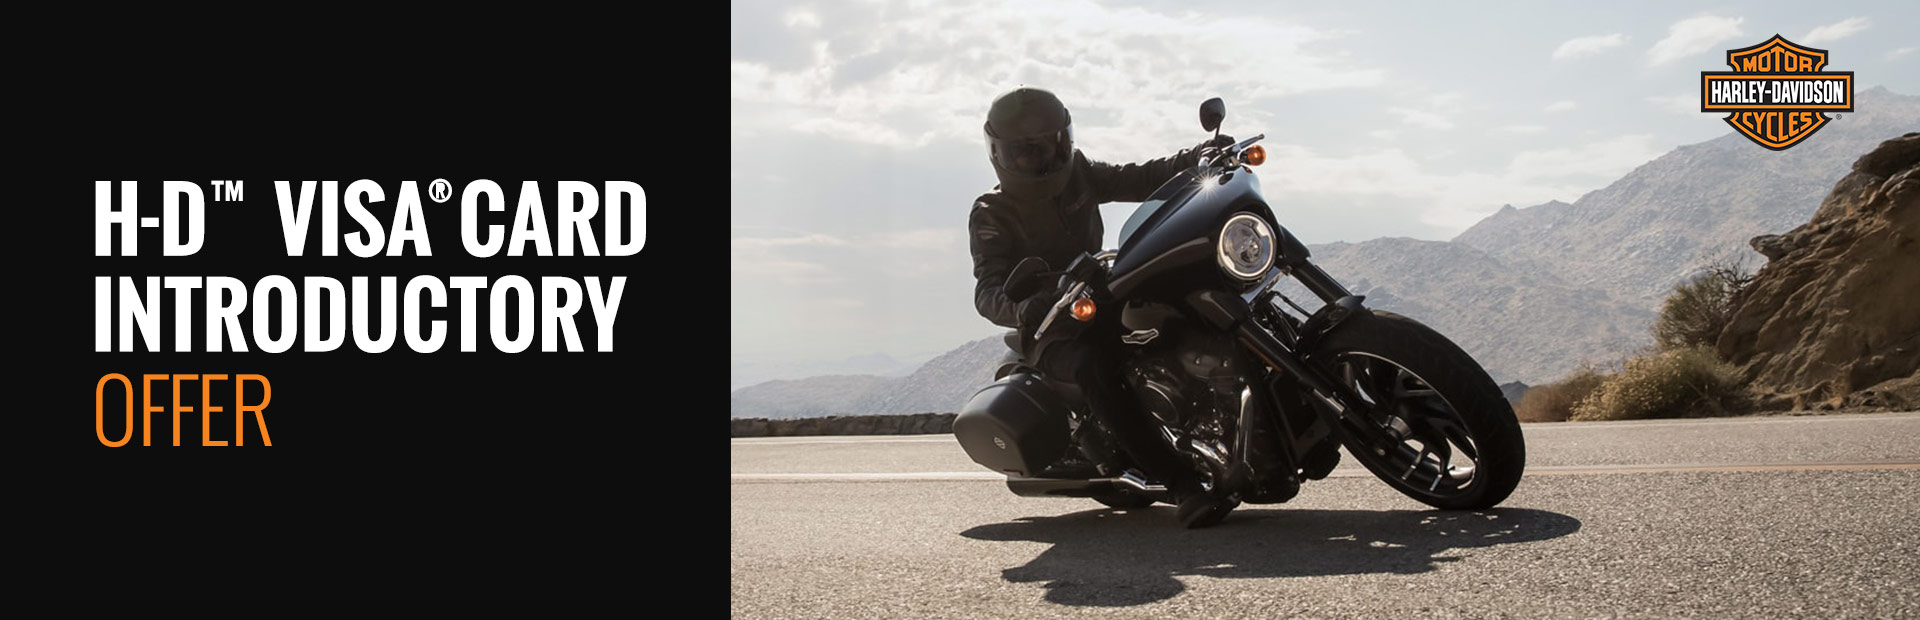 Harley-Davidson®: H-D™ Visa® Card Introductory Offer